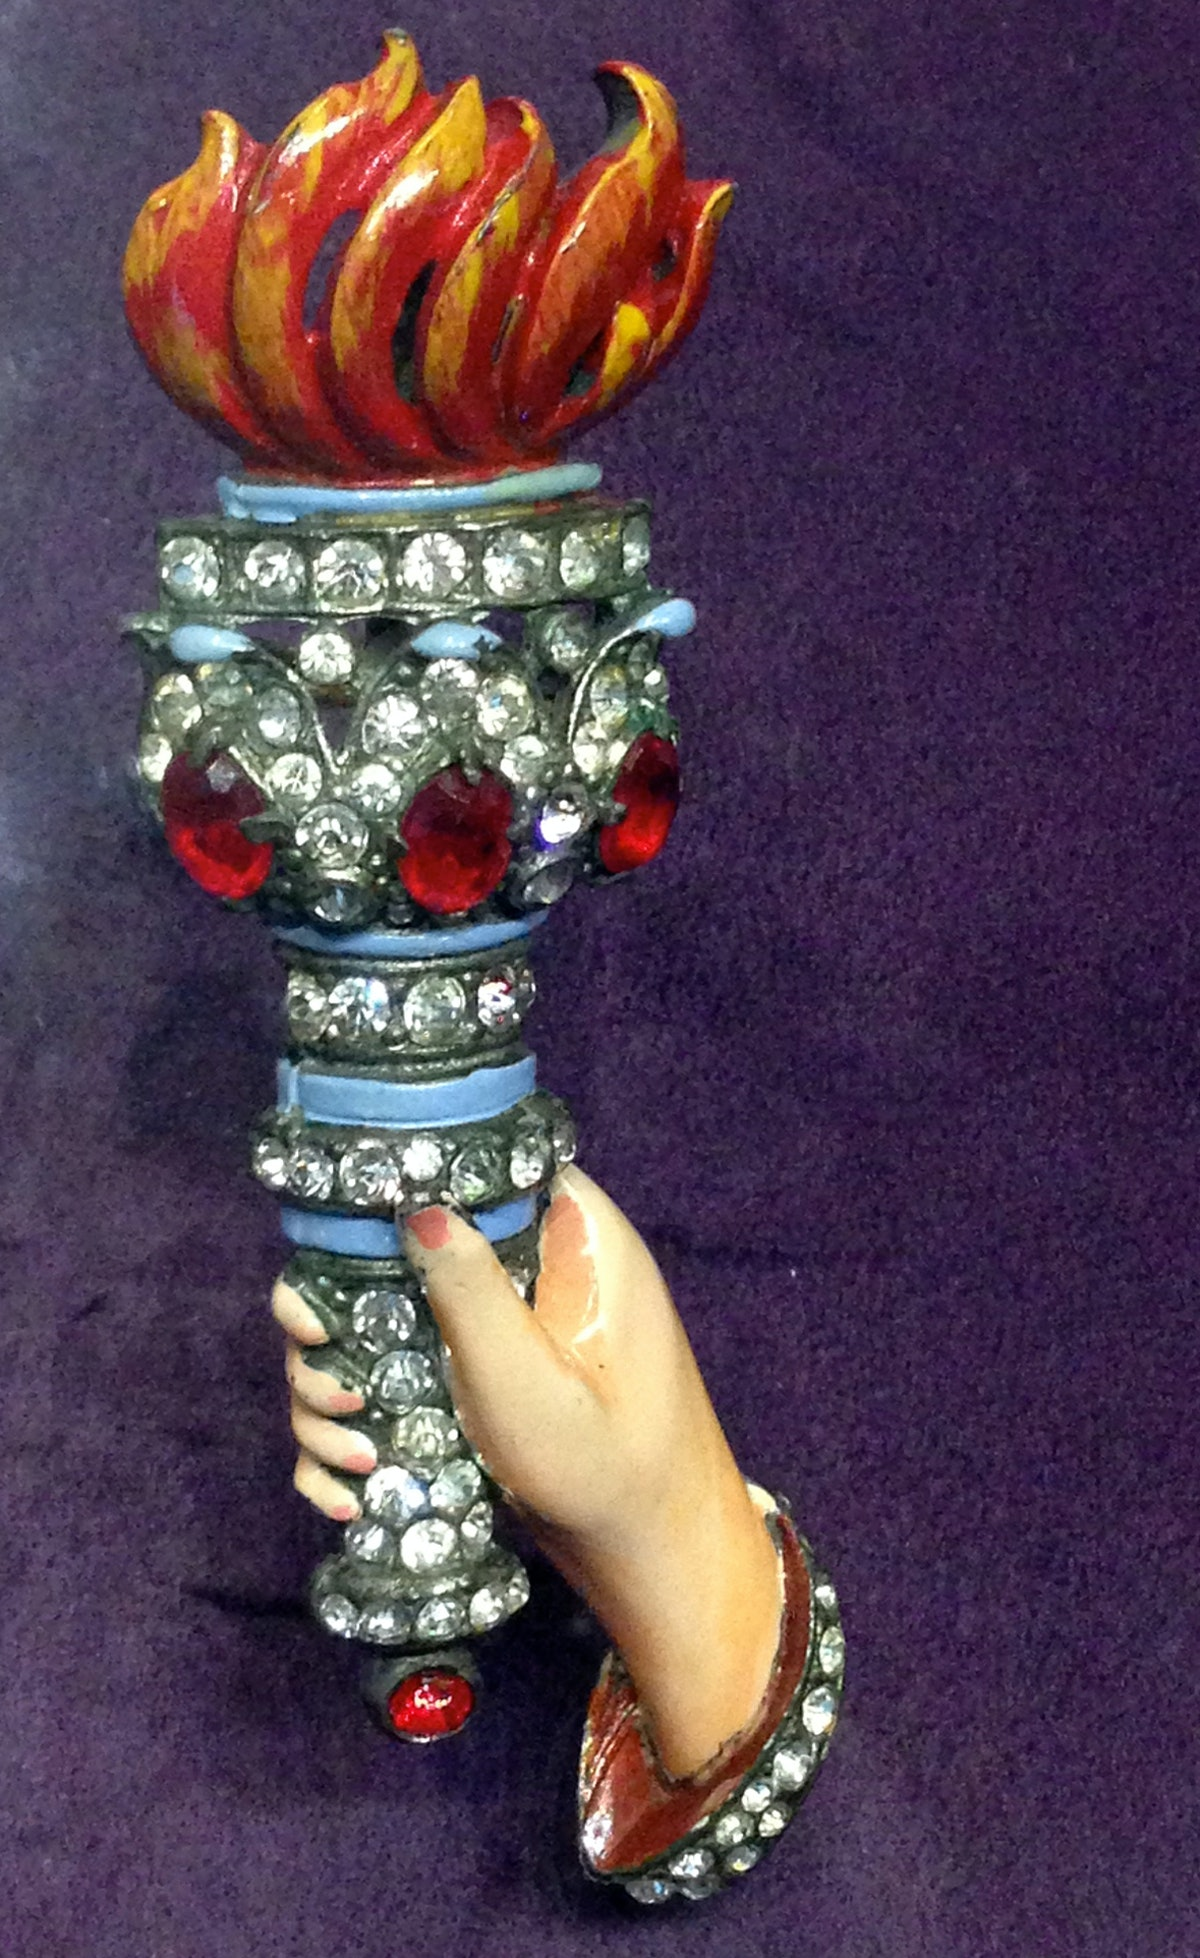 Barbara Berger's fabulous collection of costume jewelry